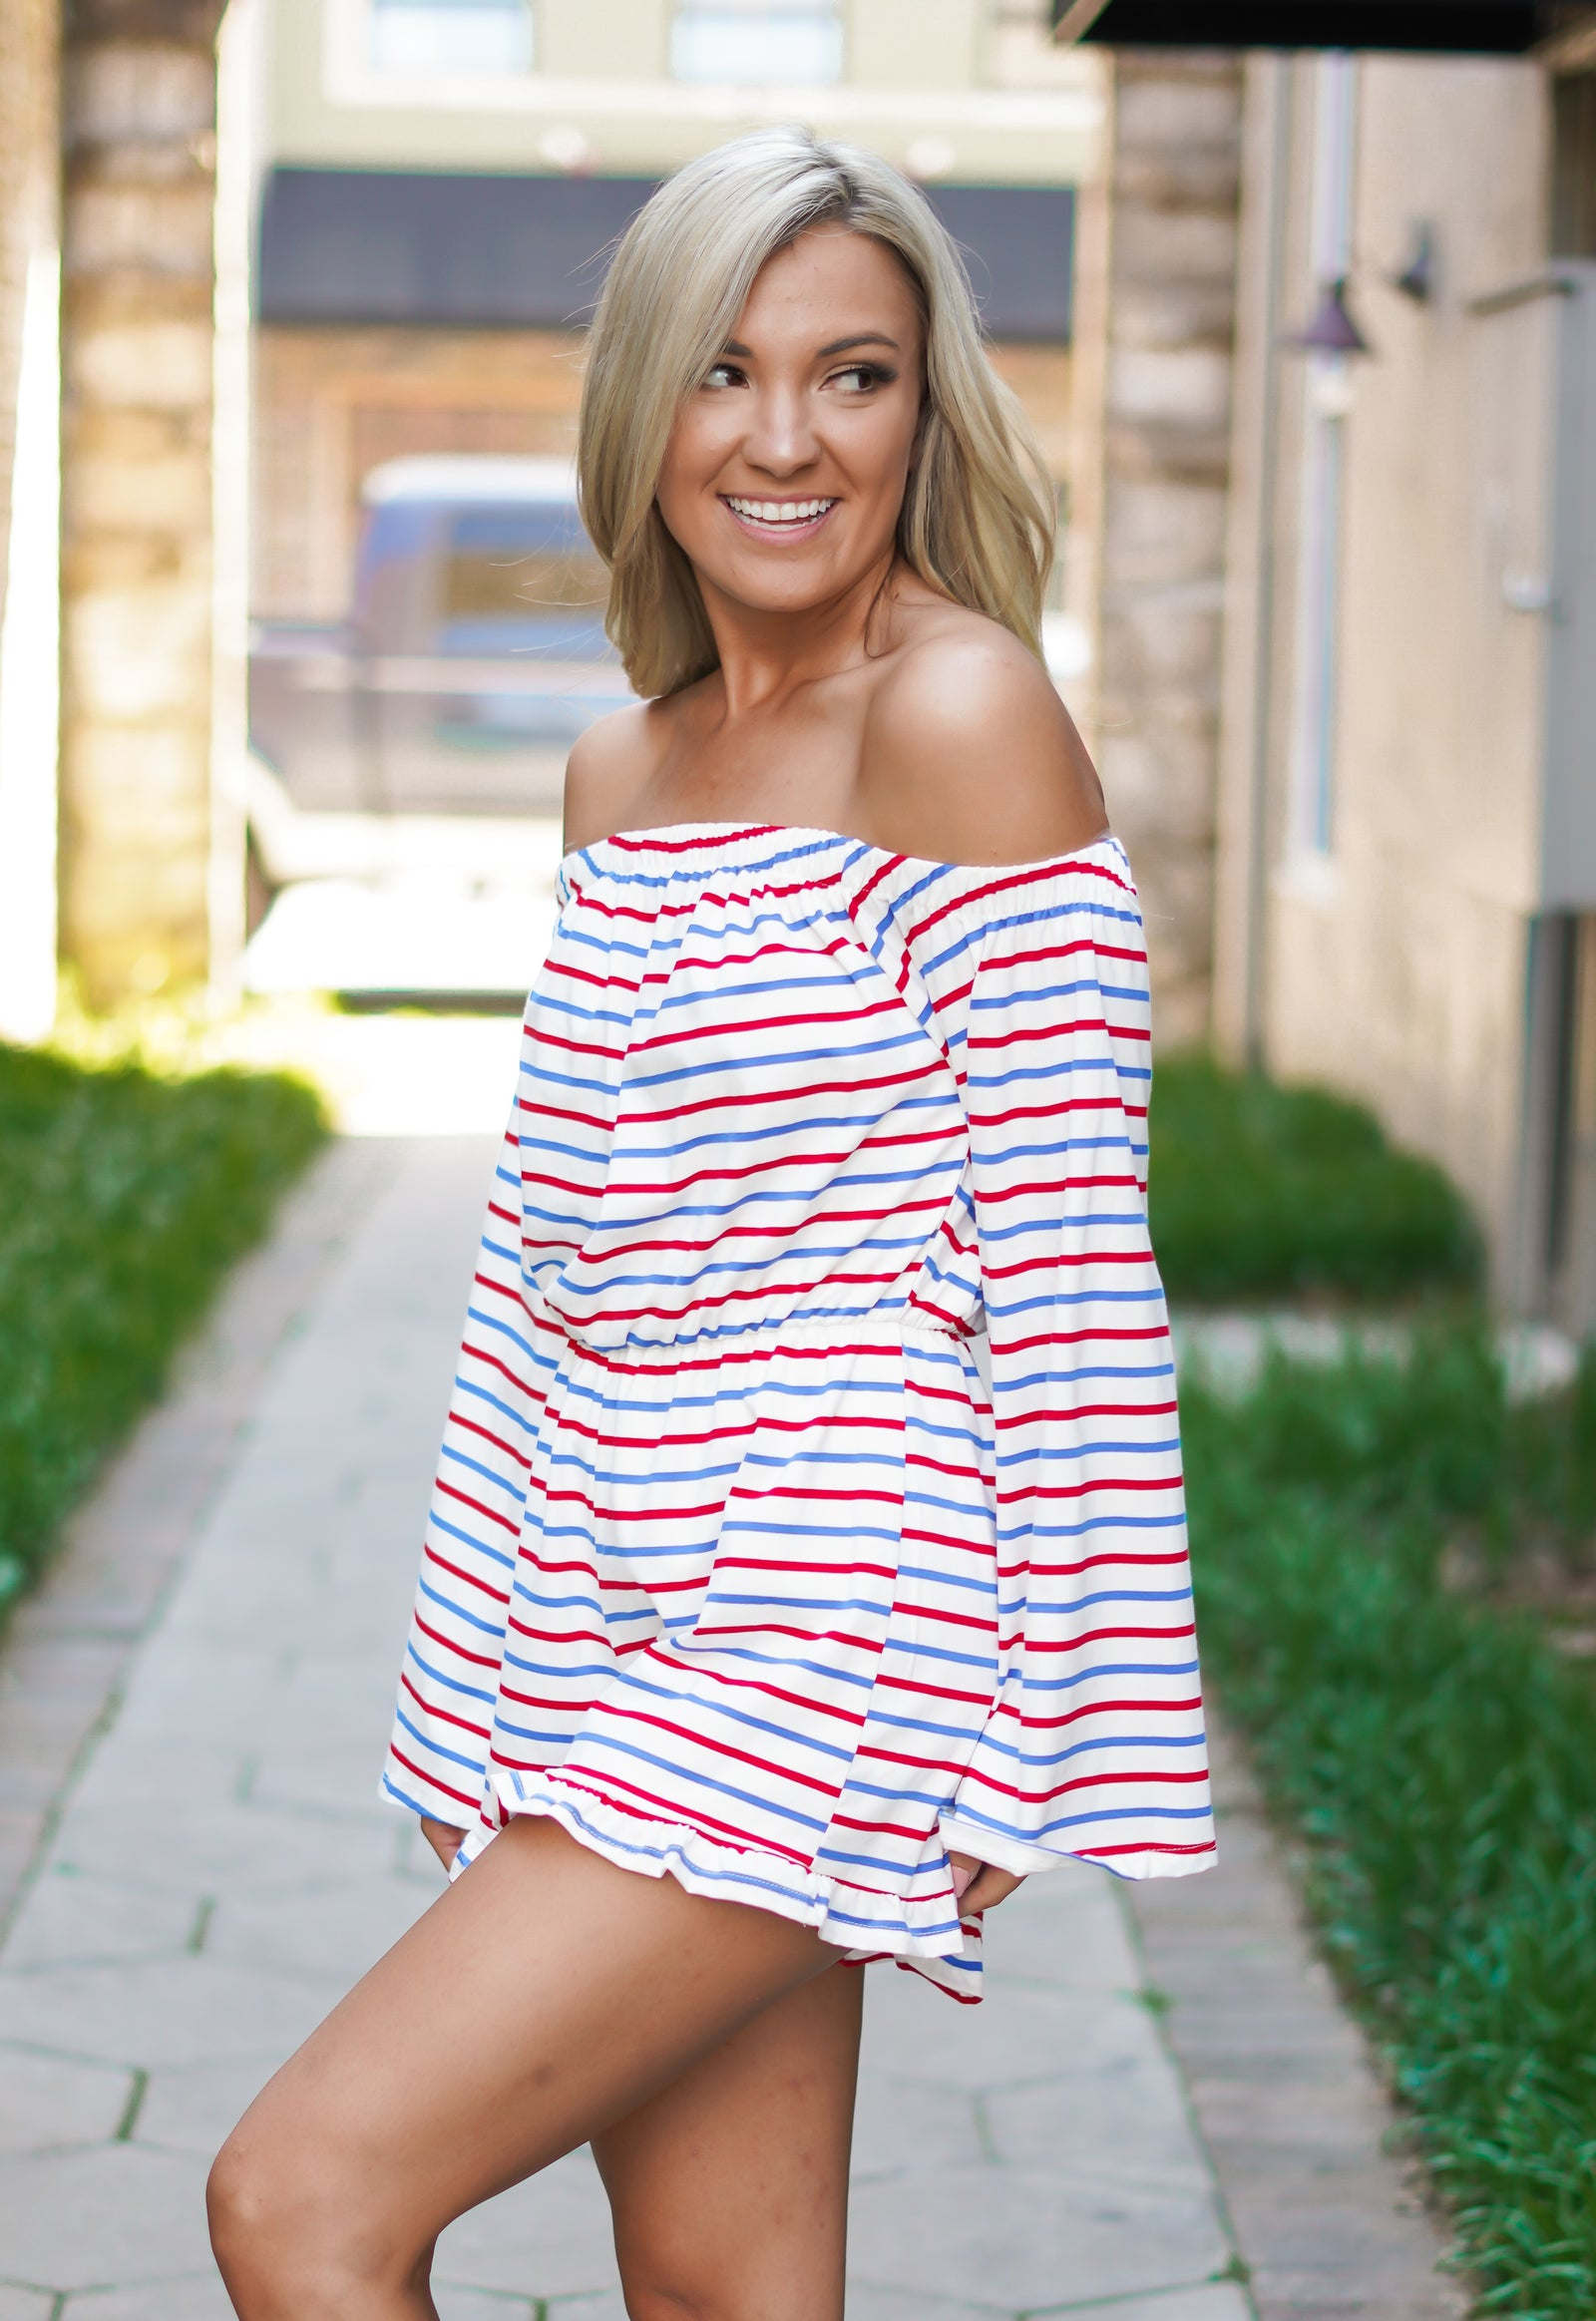 Old Glory Romper